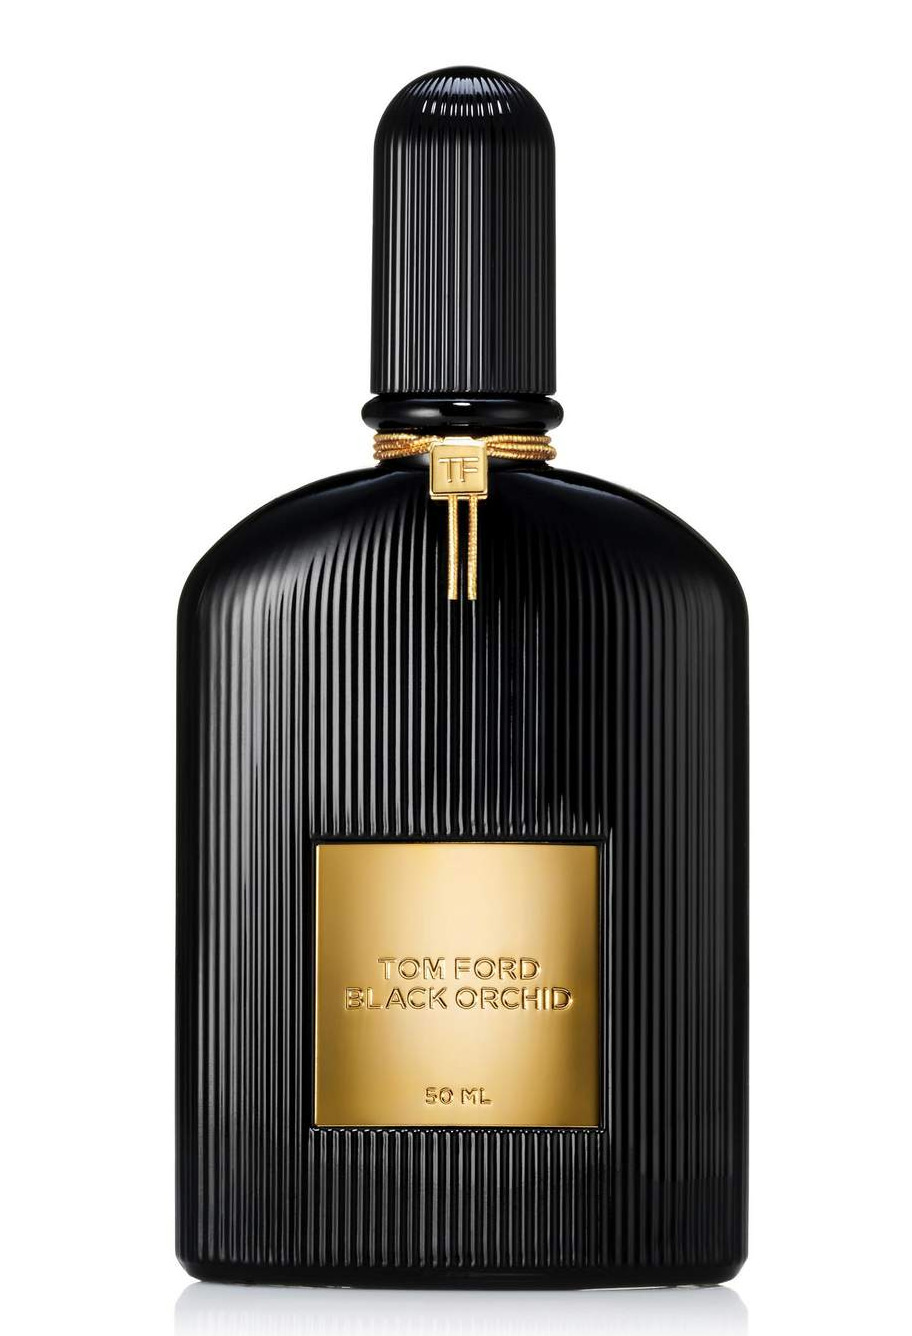 black orchid tom ford perfume a fragrance for women 2006. Black Bedroom Furniture Sets. Home Design Ideas